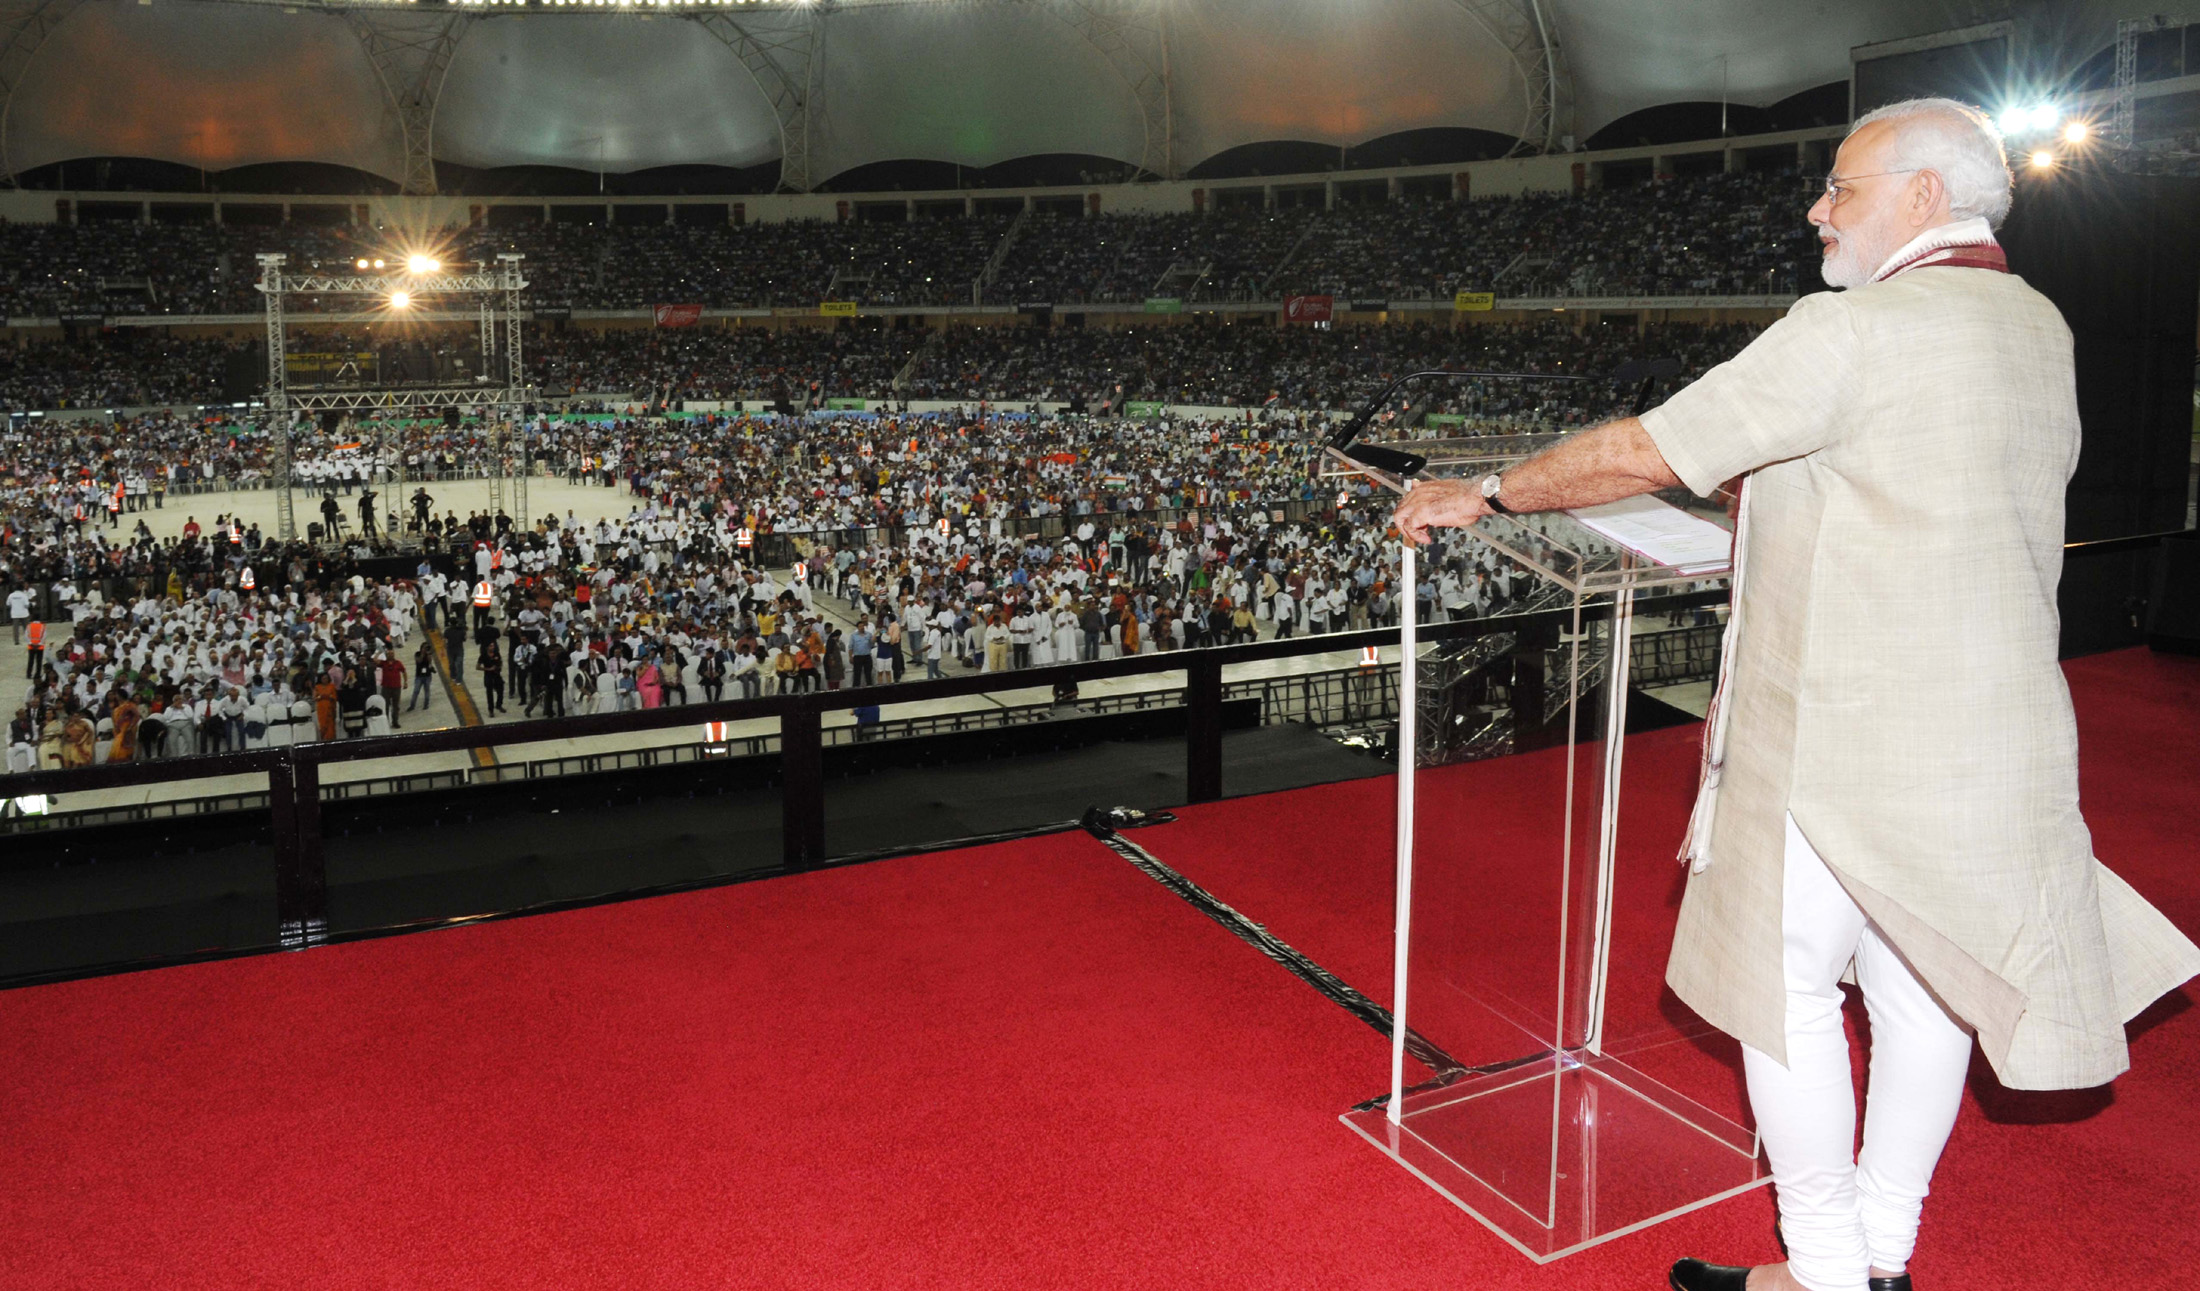 Indian Prime Minister Narendra Modi announced Indian Community Welfare Fund for those is distress while addressing the Indian Community Reception in Dubai Cricket Stadium, UAE. Photo Courtesy: PIB